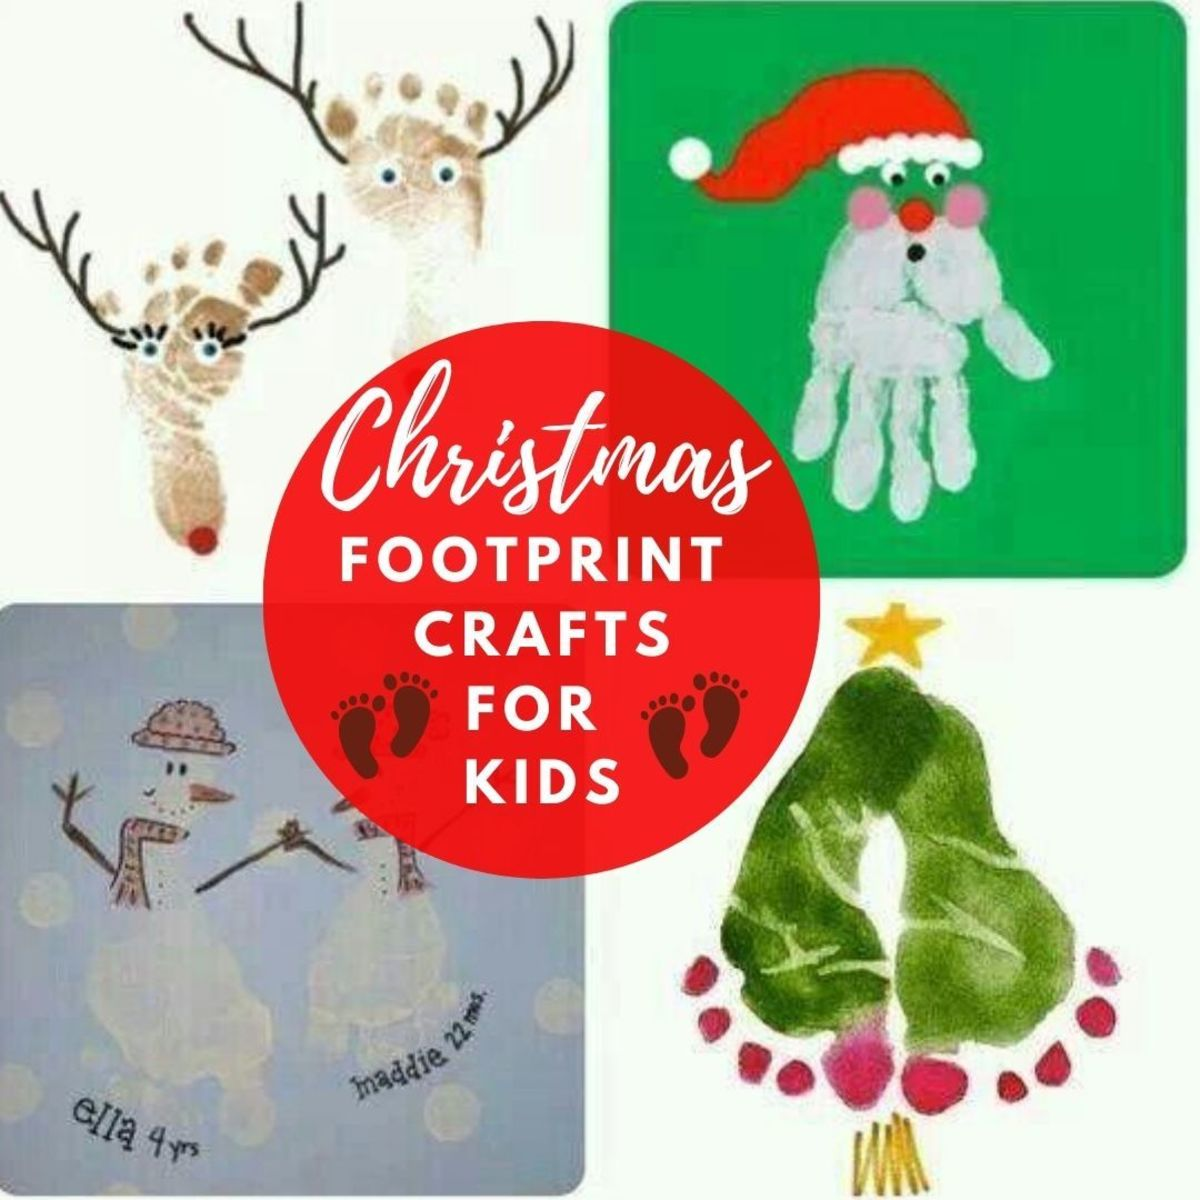 Christmas Footprint Crafts for Kids